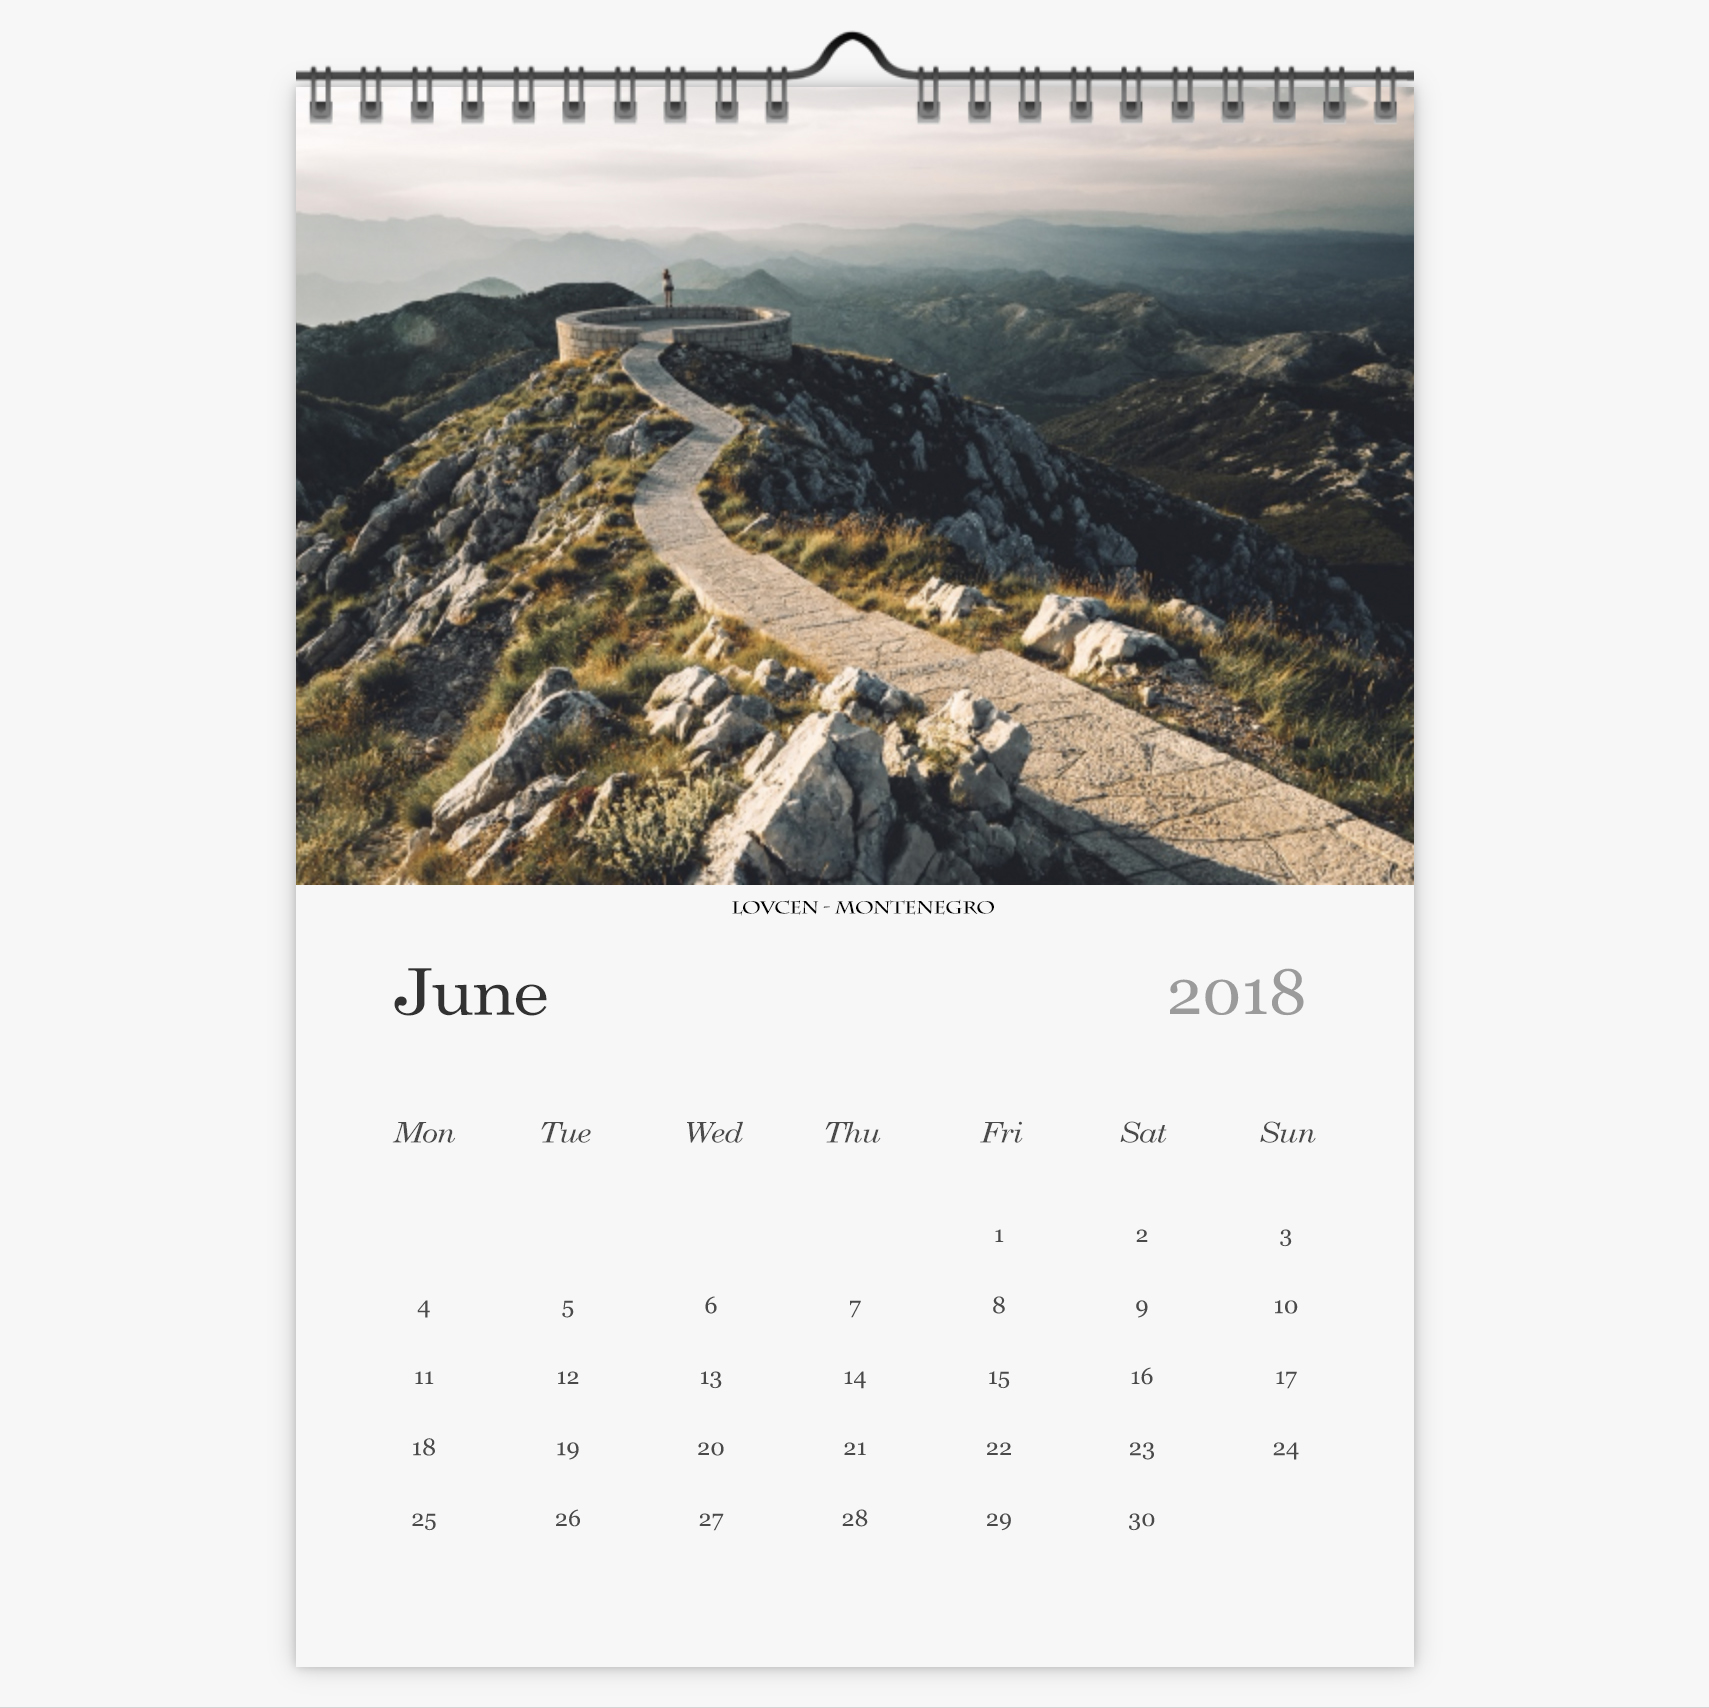 Chris Eyre-Walker Photography 2018 Calendar June